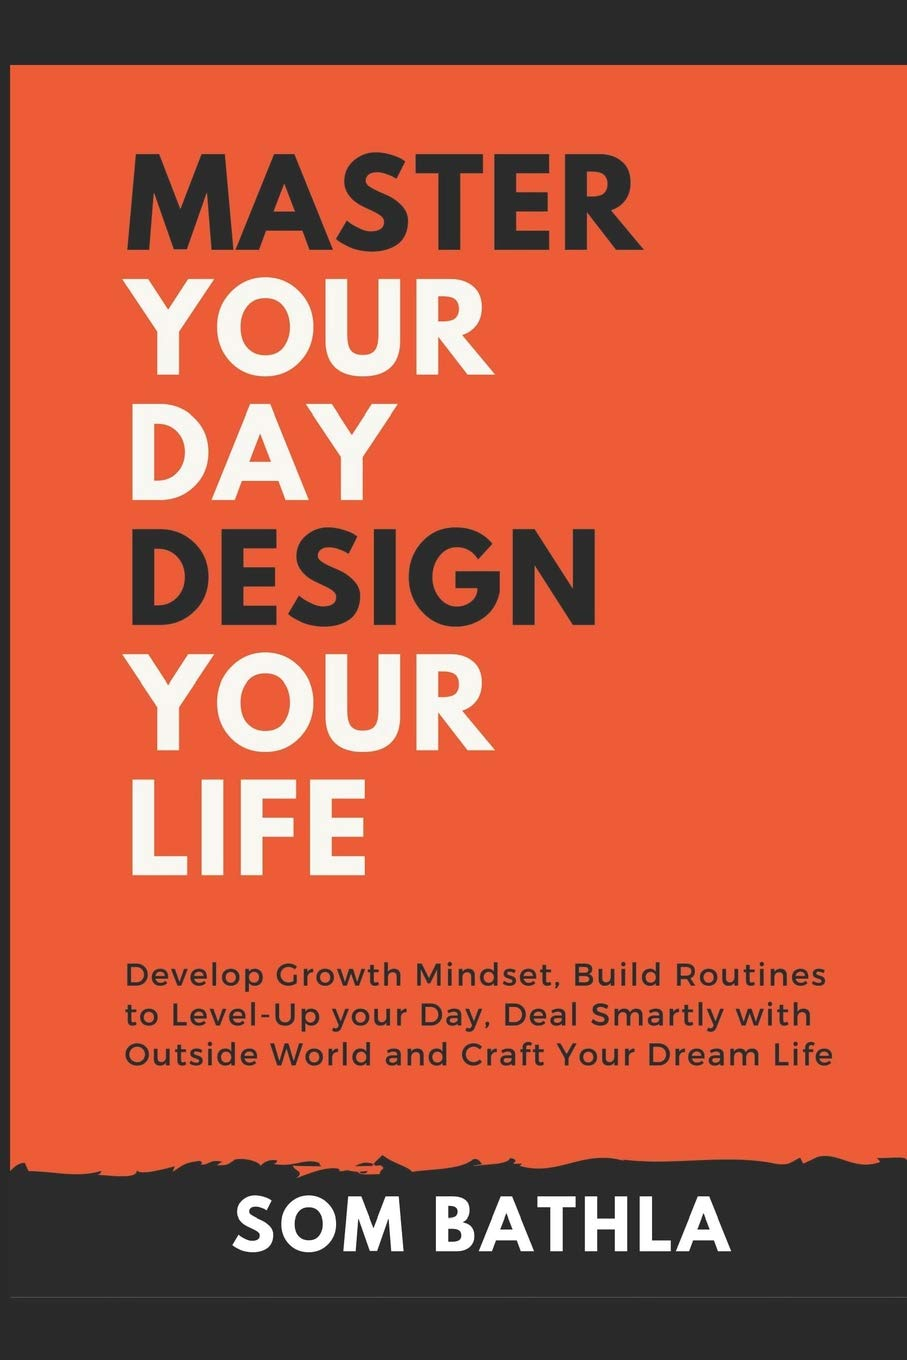 Download Master Your Day - Design Your Life: Develop Growth Mindset, Build Routines to Level-Up your Day, Deal Smartly with Outside World and Craft Your Dream Life pdf